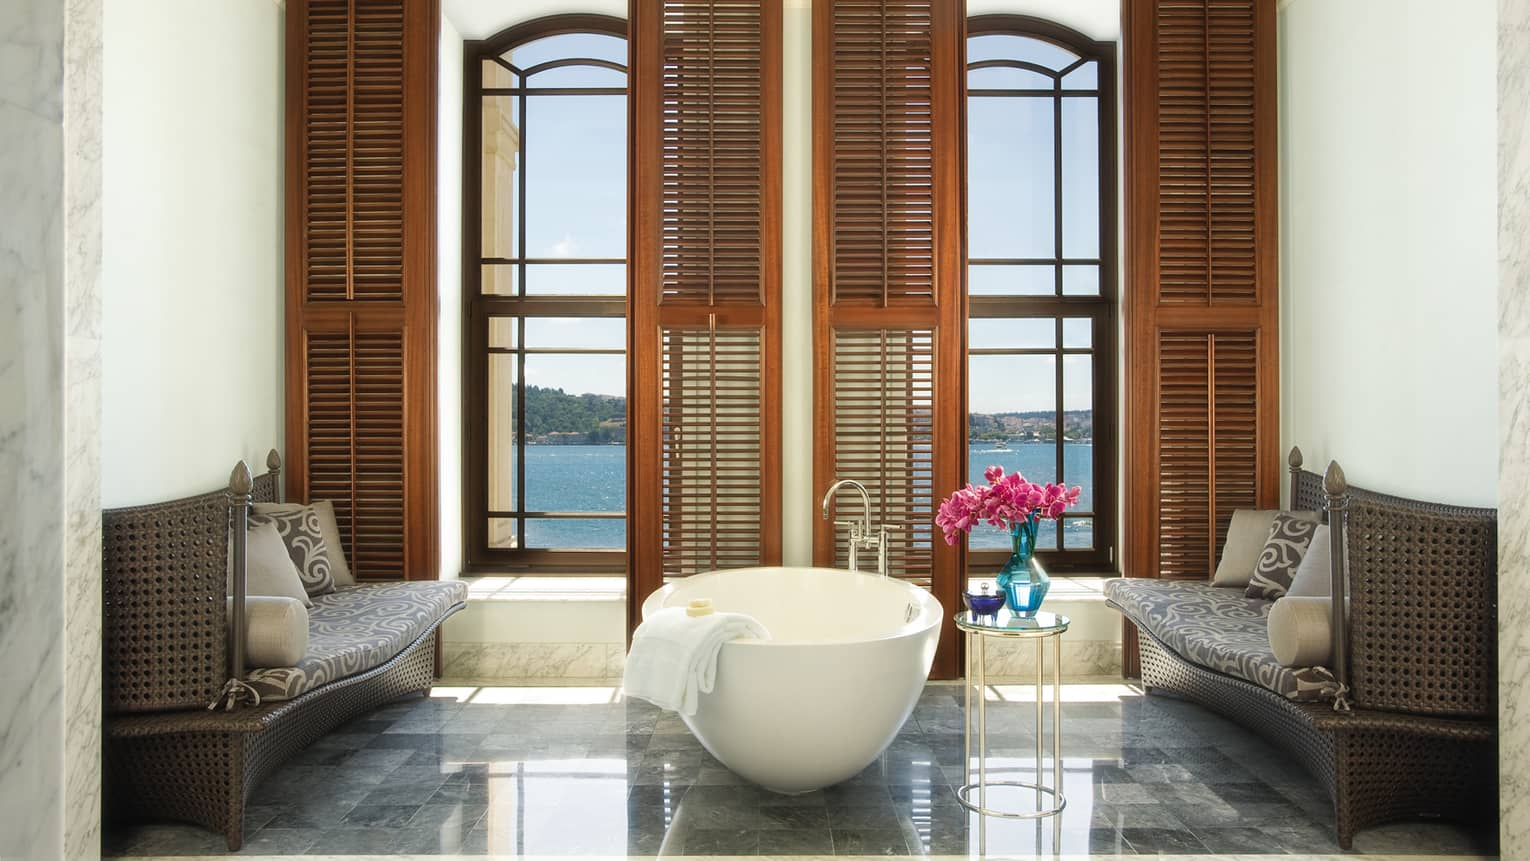 White freestanding tub in front of tall windows, wood shutters in marble bathroom